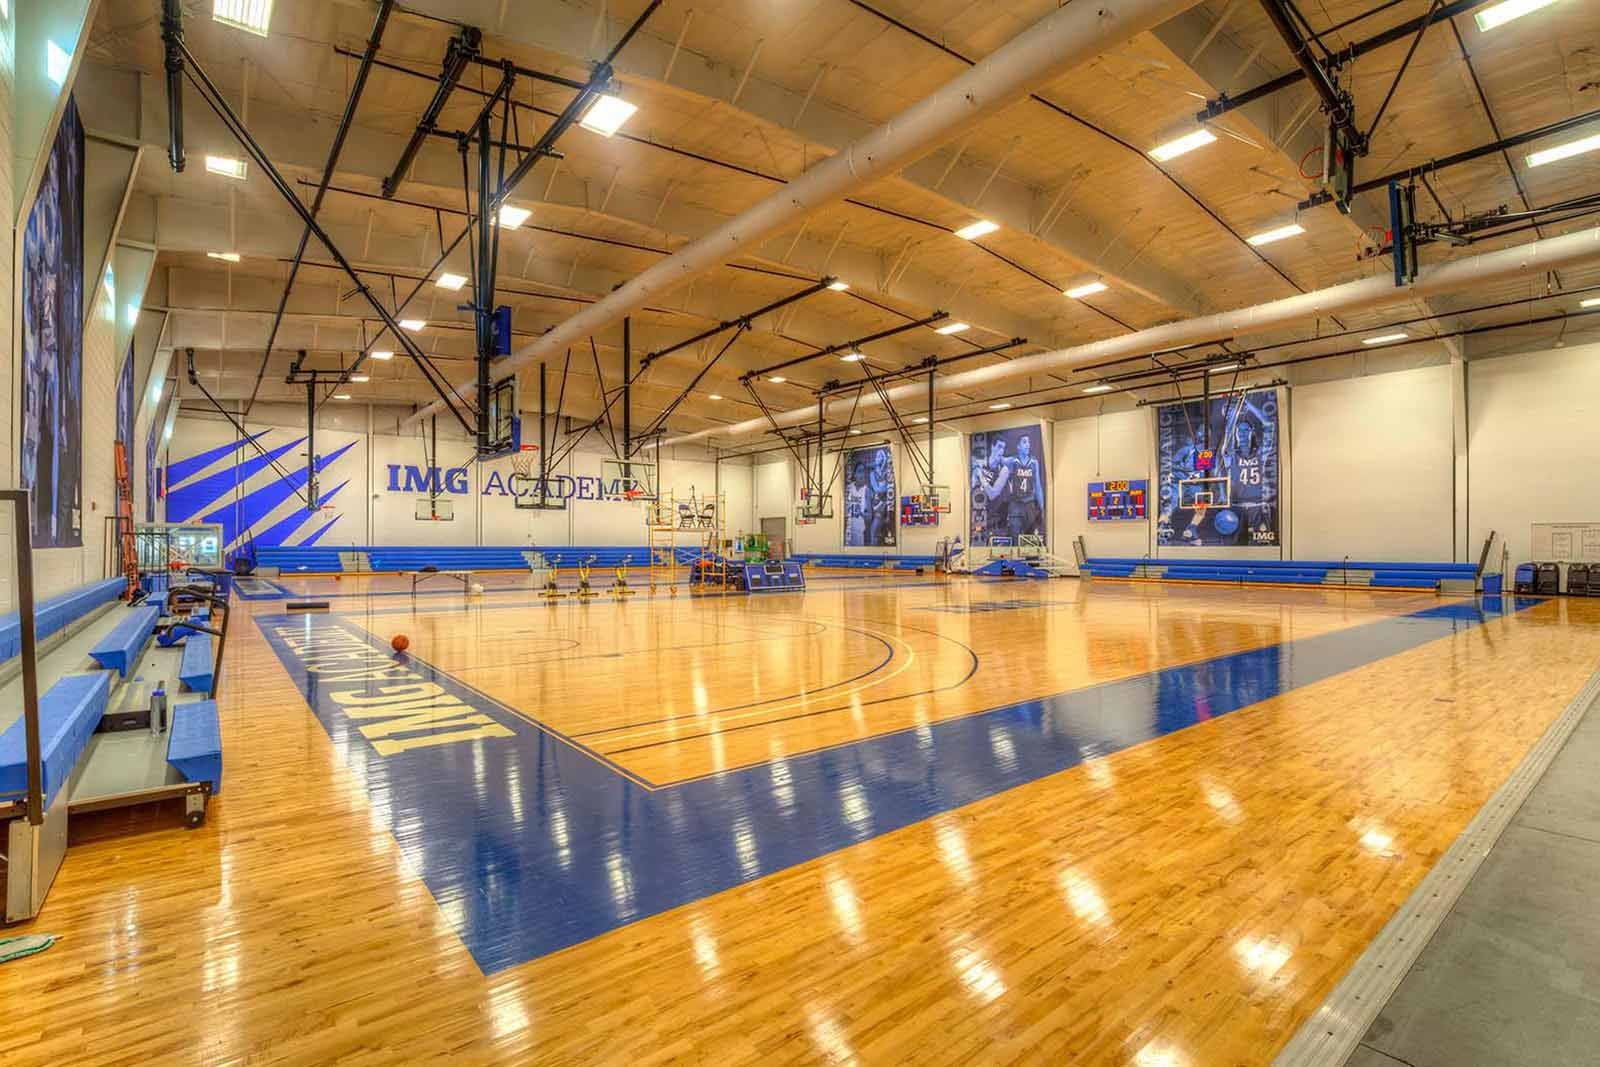 Sports Academy: Athletic & Education Performance | IMG Academy